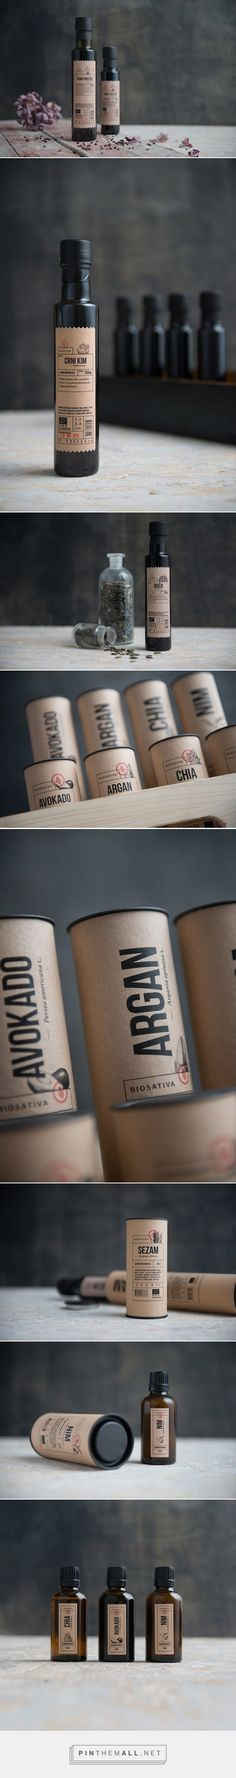 #packaging #design #branding #identity